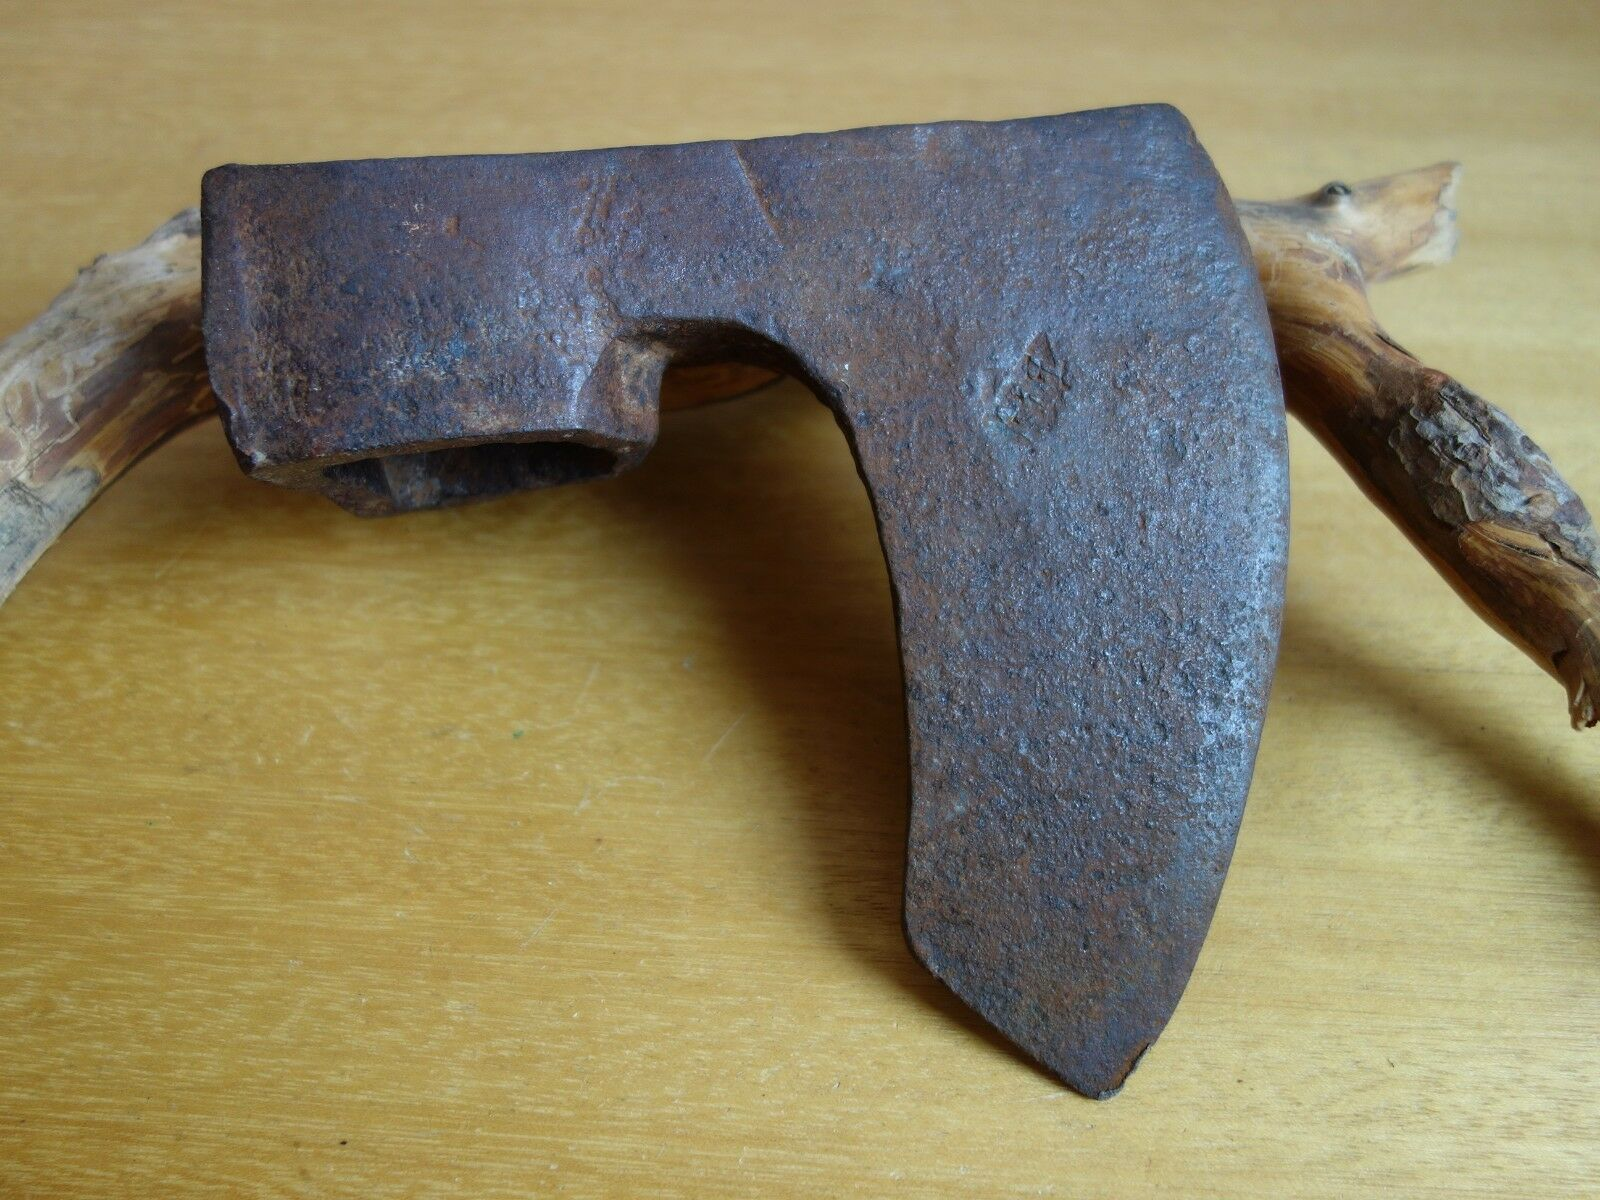 VTG OLD RARE 2.86LBS  FORGED VIKING BEARDED FELLING BROAD AXE HEAD HATCHET HIKING  up to 65% off